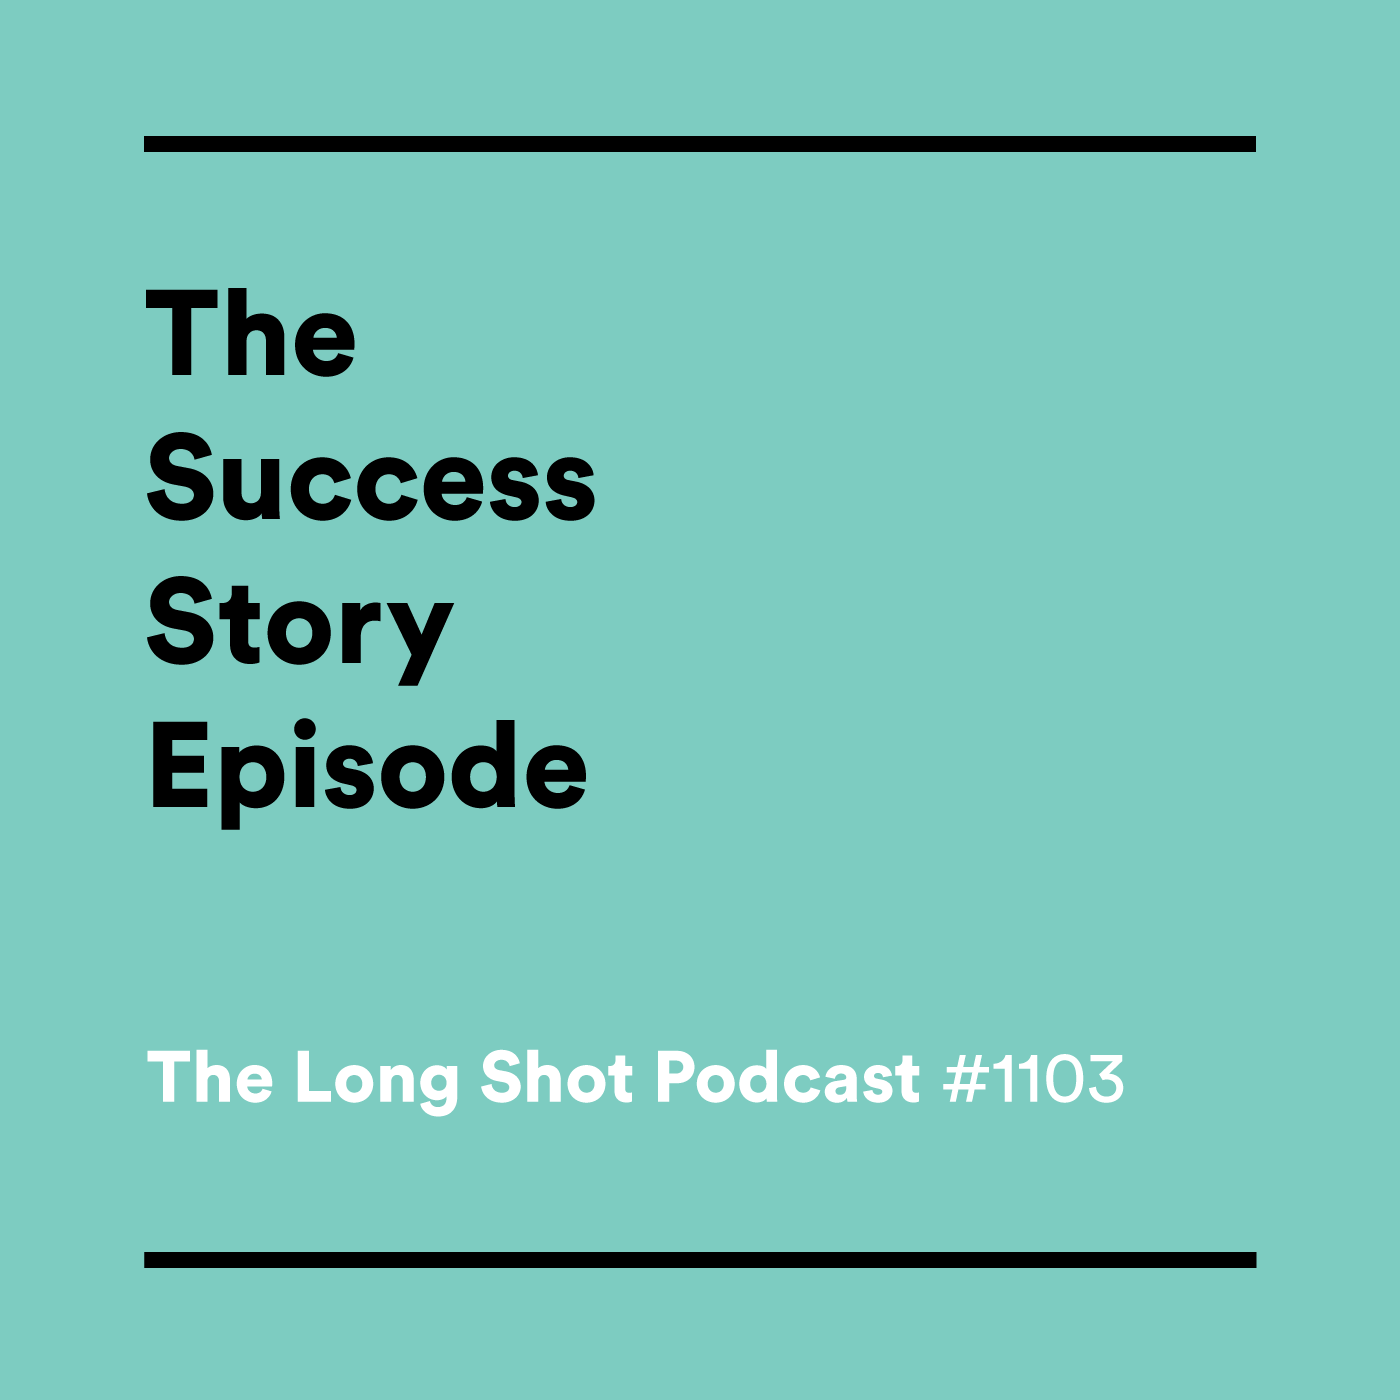 #1103 The Success Story Episode